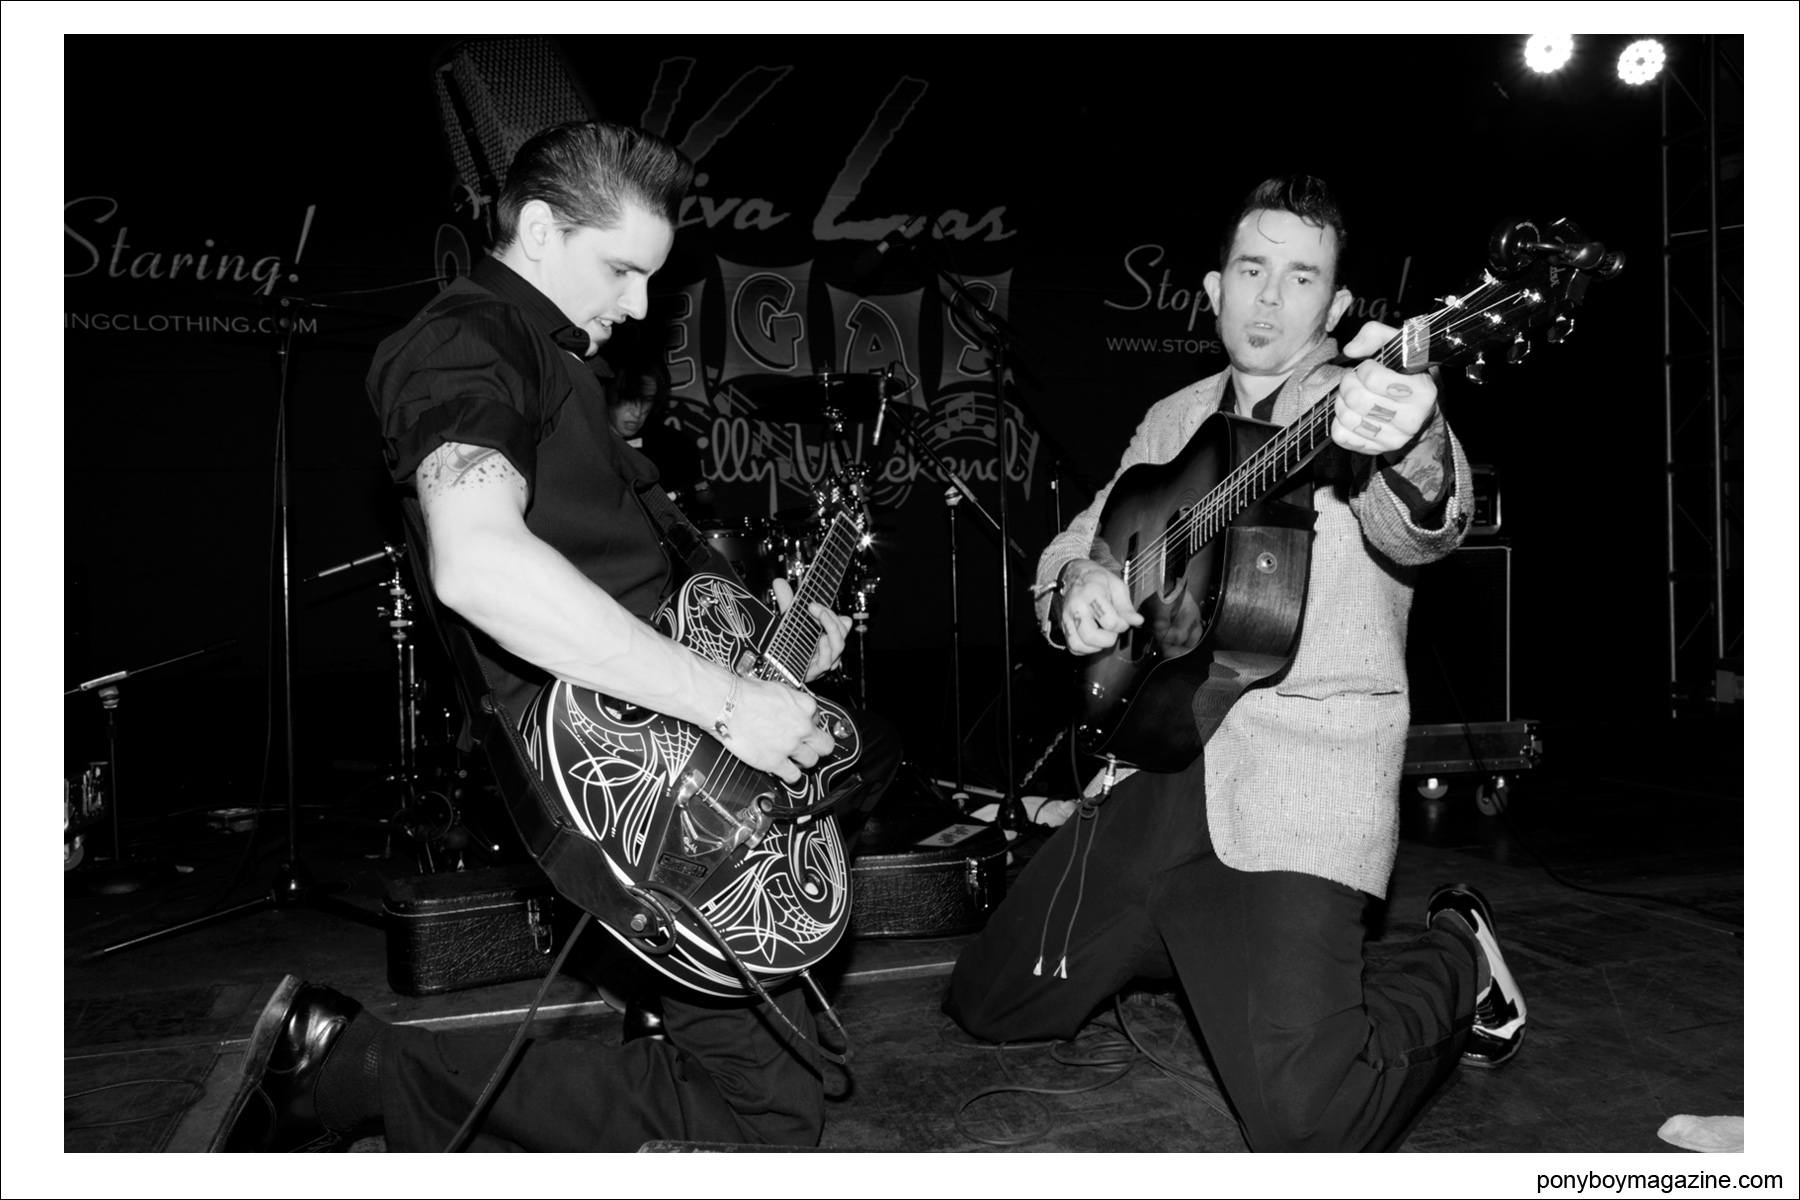 Cash O'Riley and The DownRight Daddies performing at annual Viva Las Vegas Rockabilly weekender, by Alexander Thompson for Ponyboy Magazine.